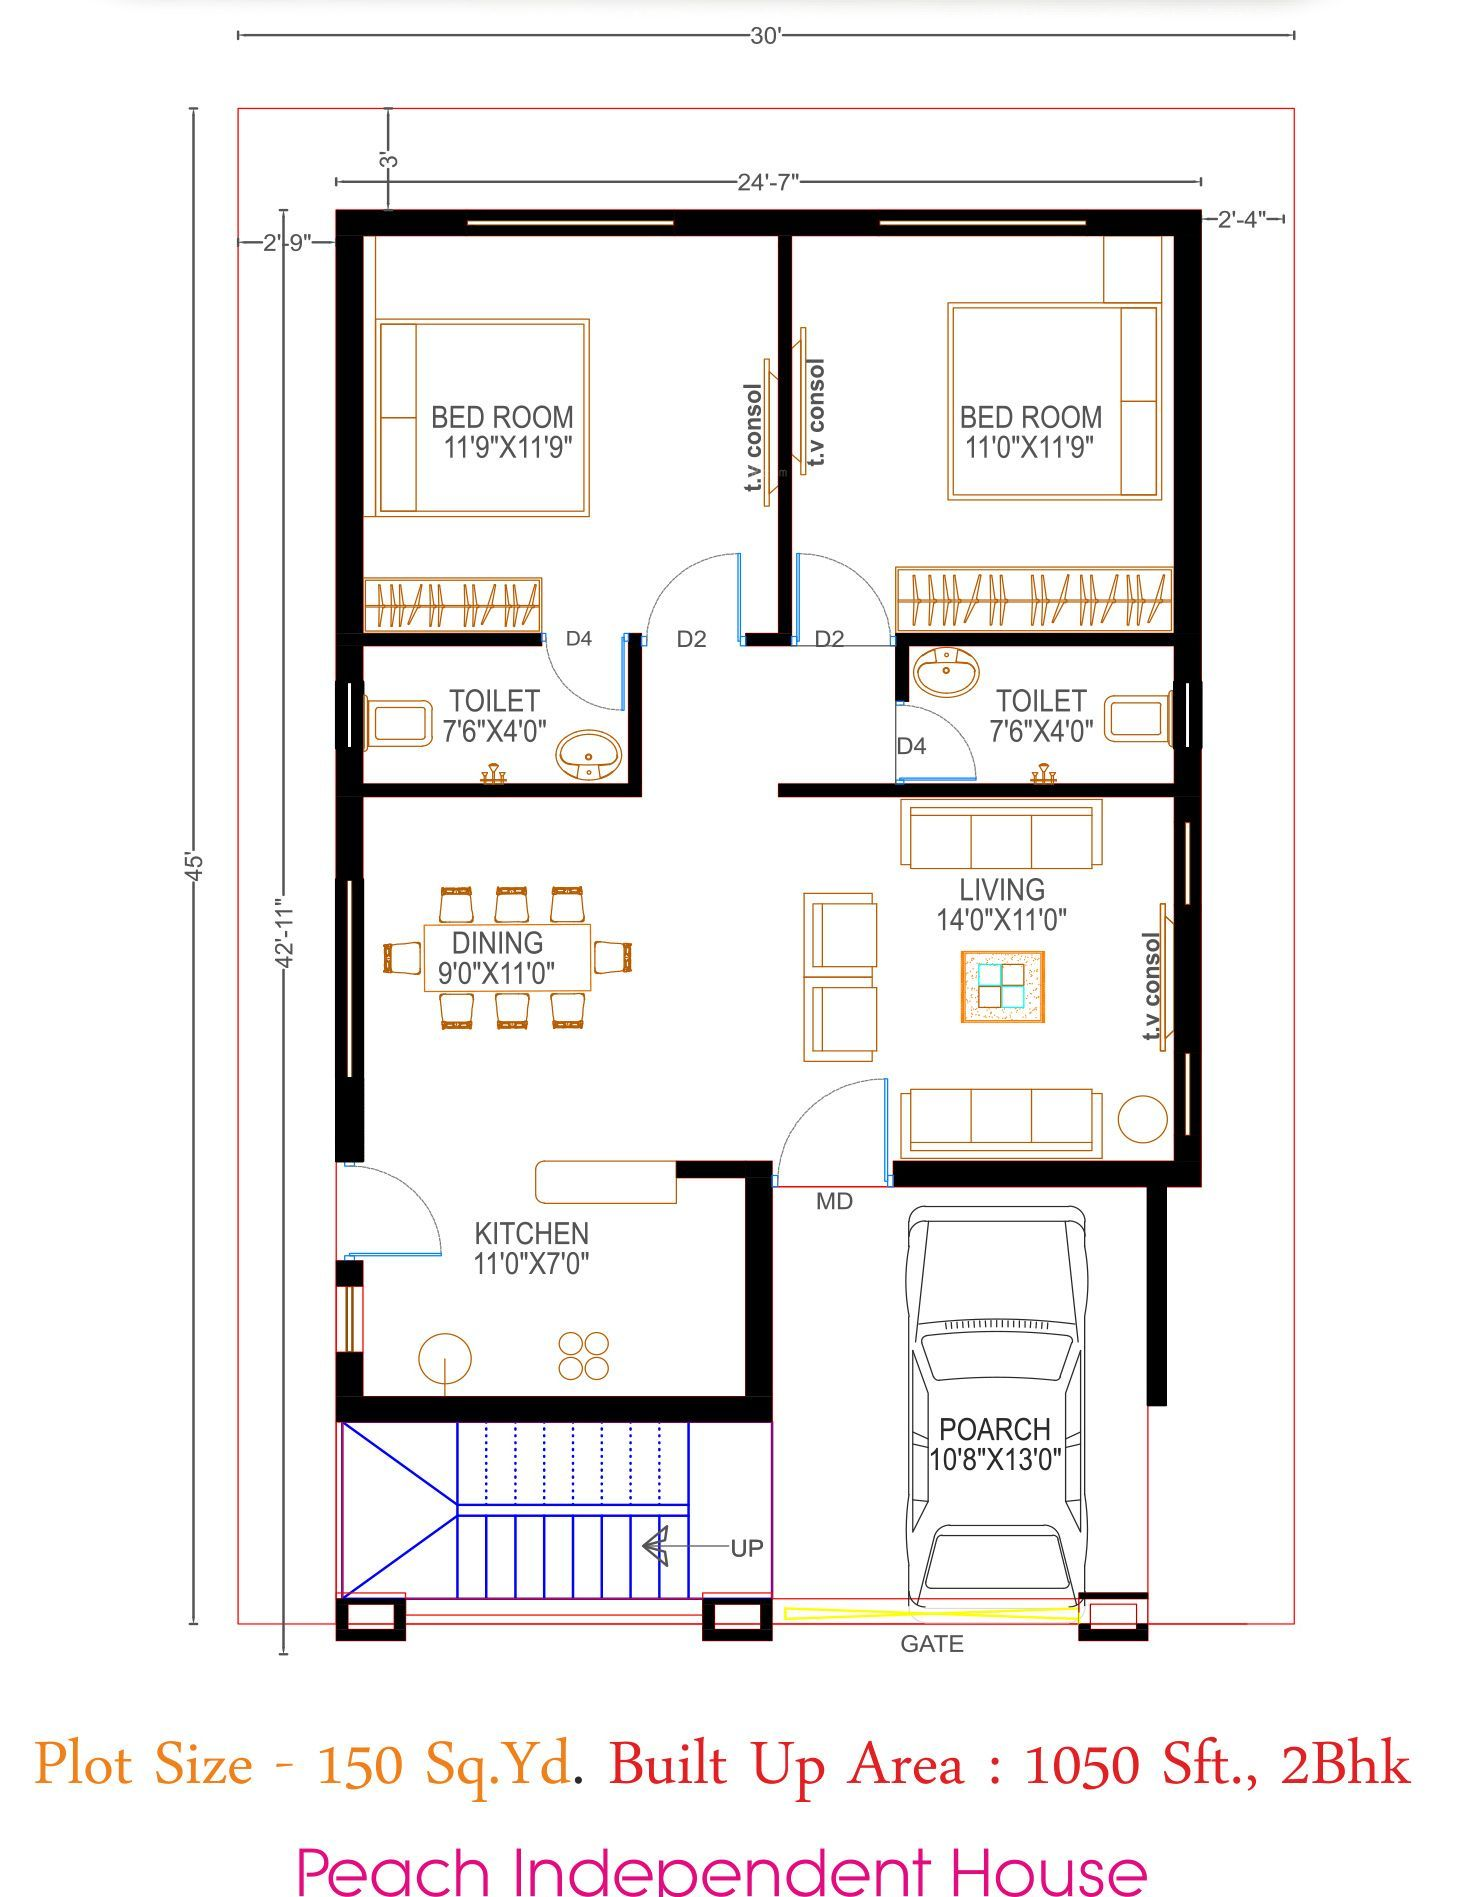 Luxury Plan Of 2bhk House (7) Meaning